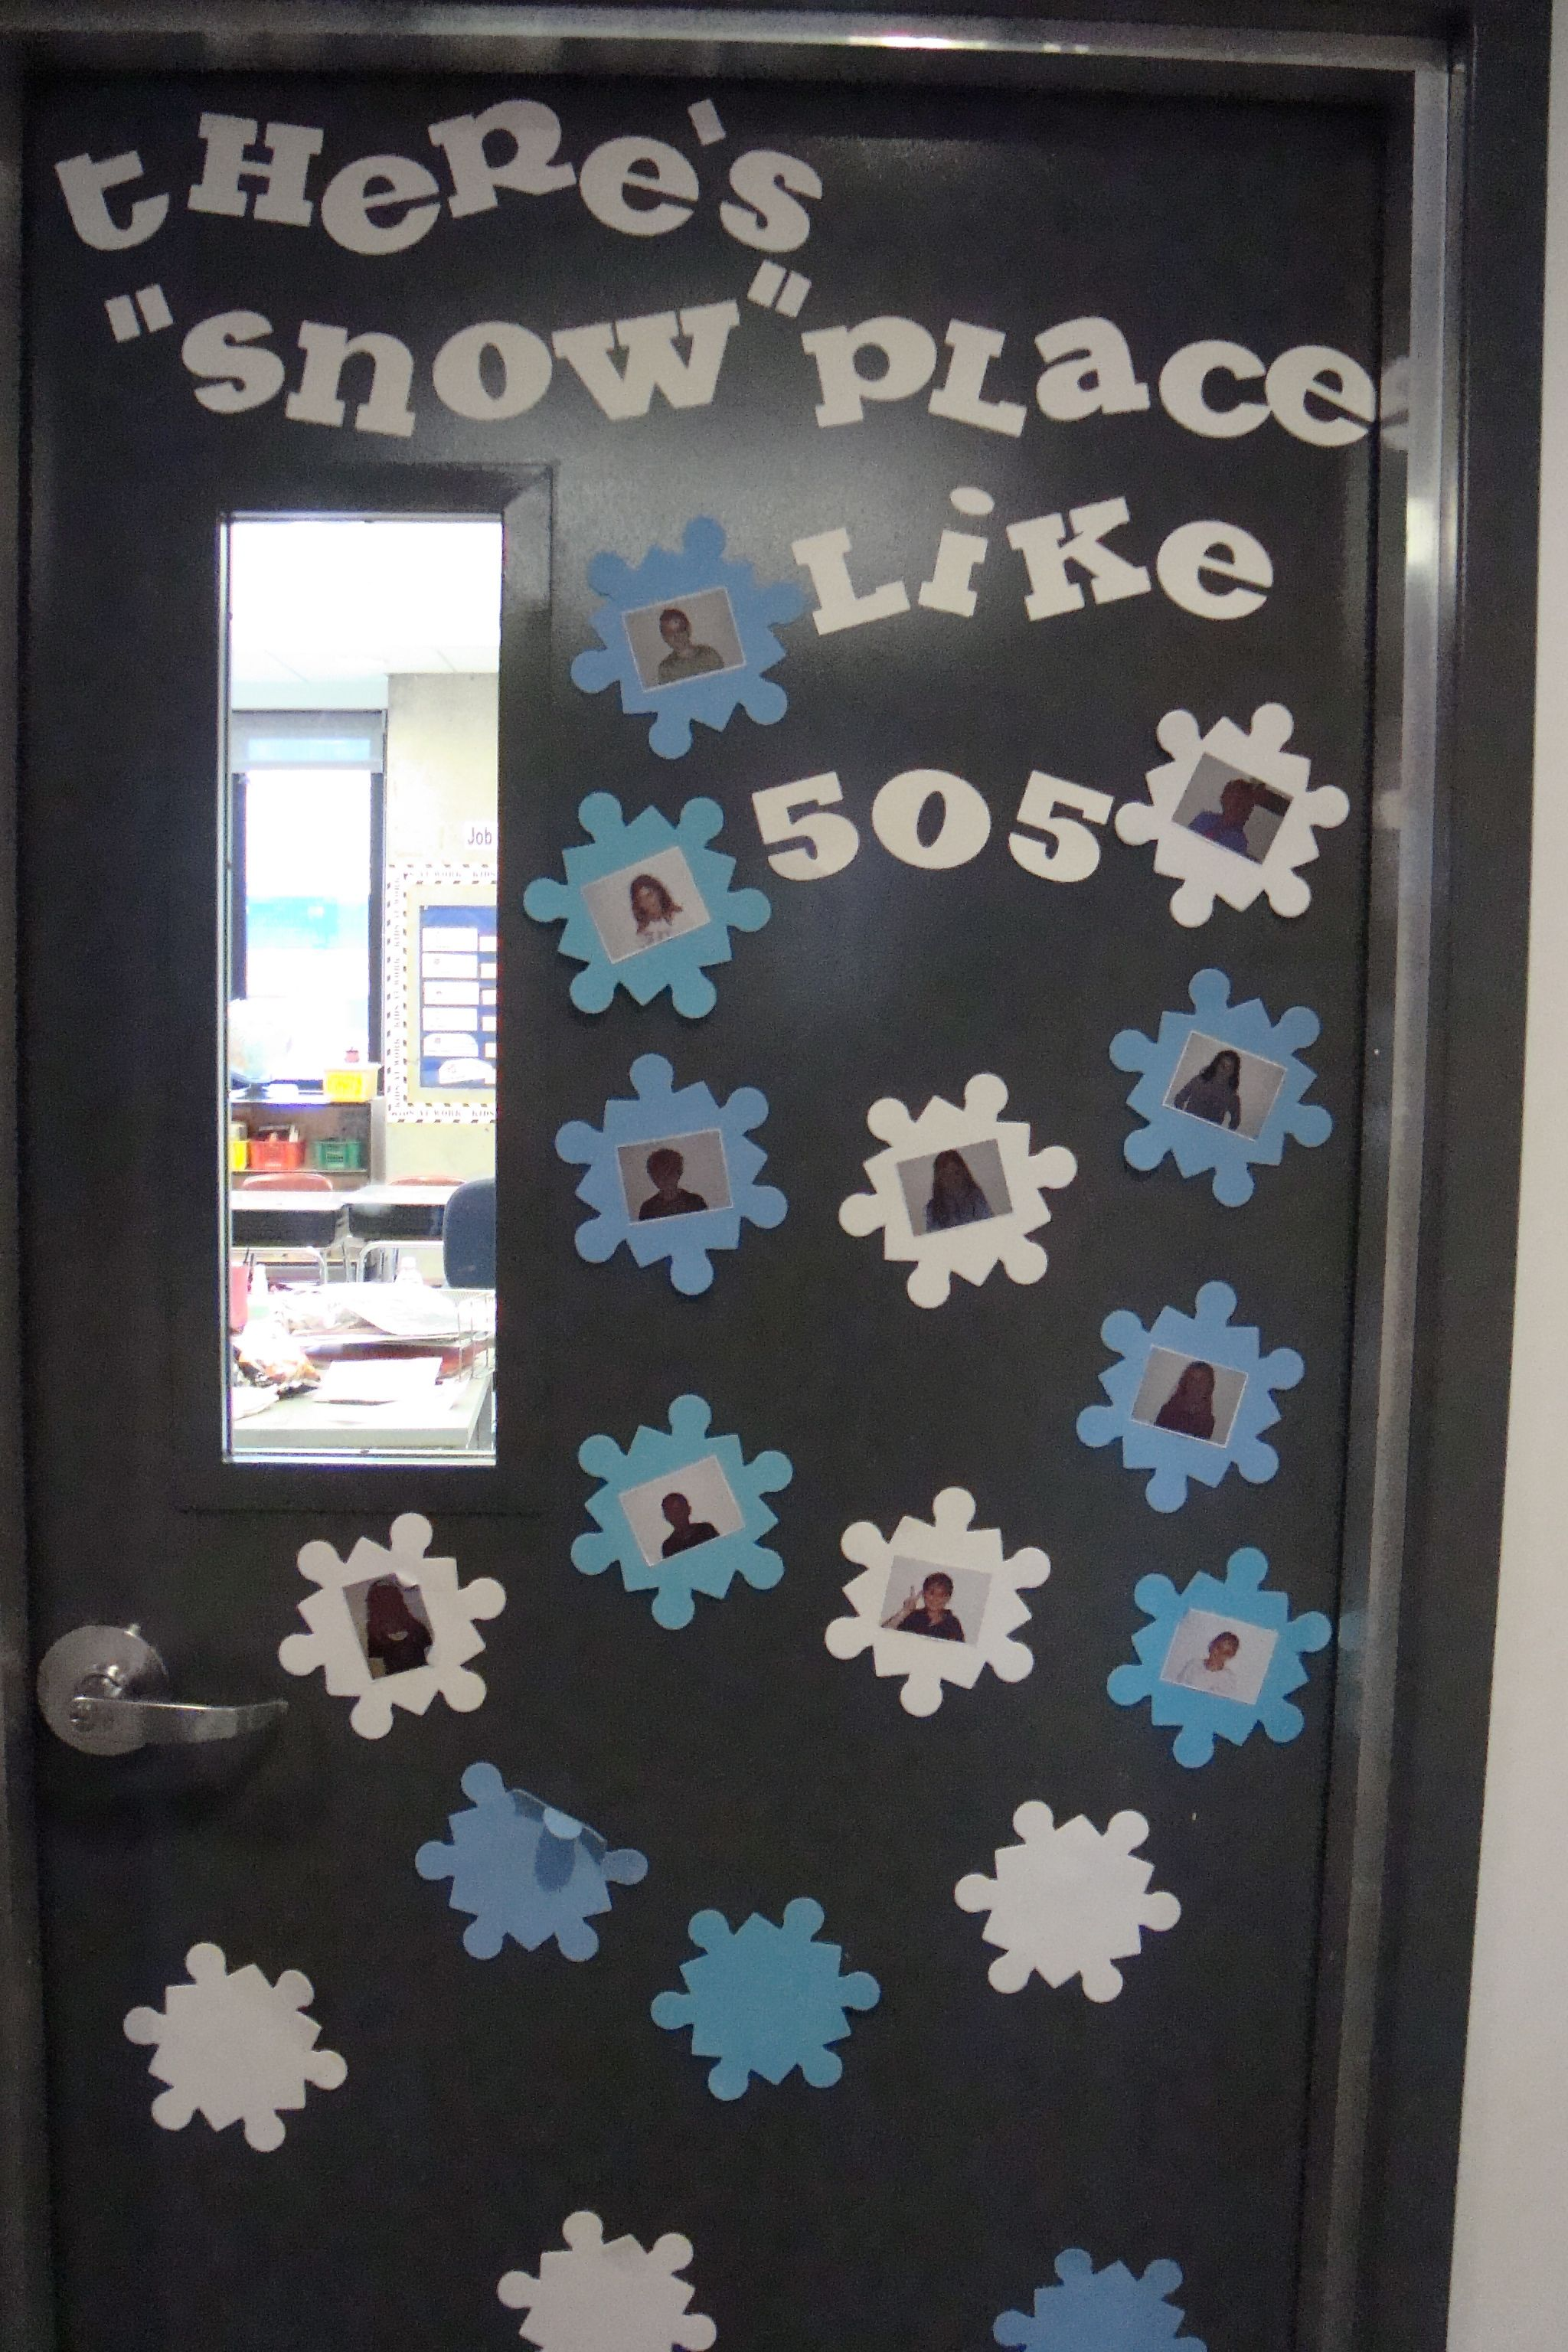 There S Snow Place Like 505 Winter Door Decoration Preschool